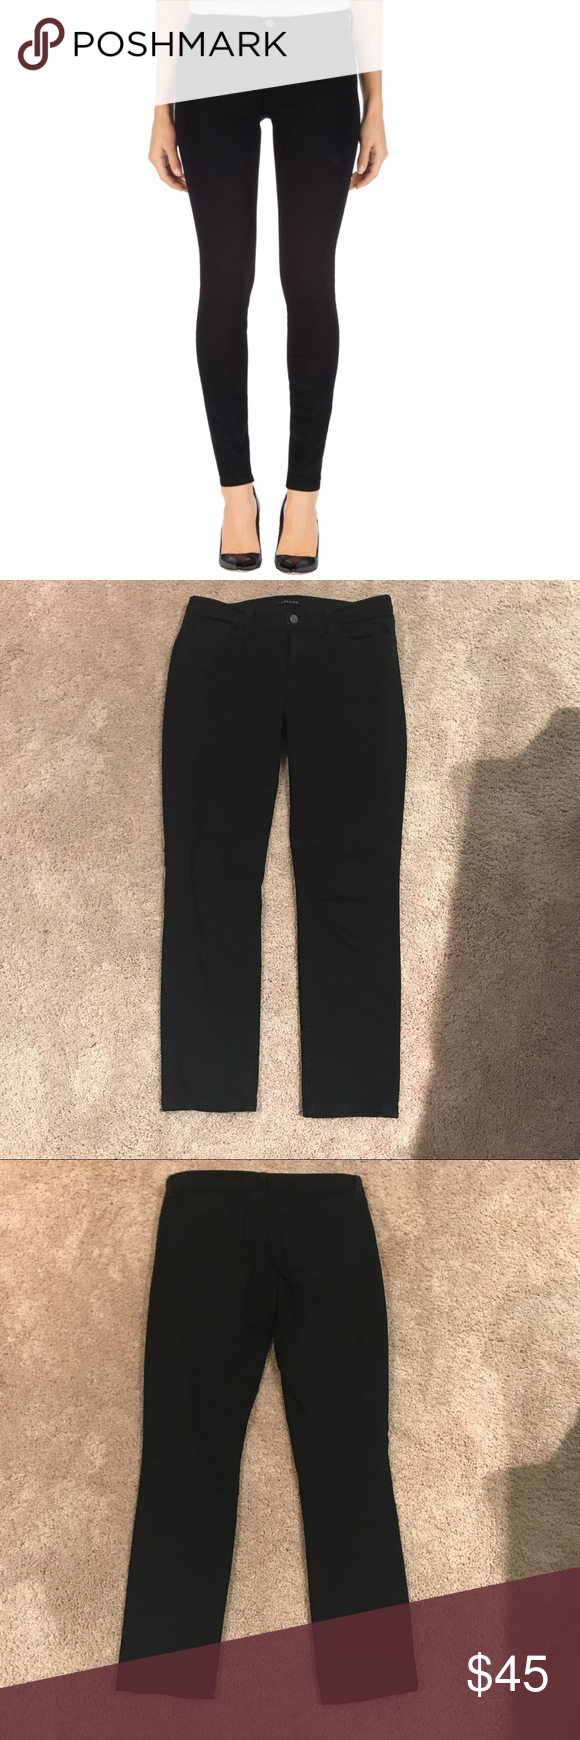 a00c3ffd9923 J. Brand 811 MID-RISE SKINNY LEG IN SHADOW size 28 Perfect condition -